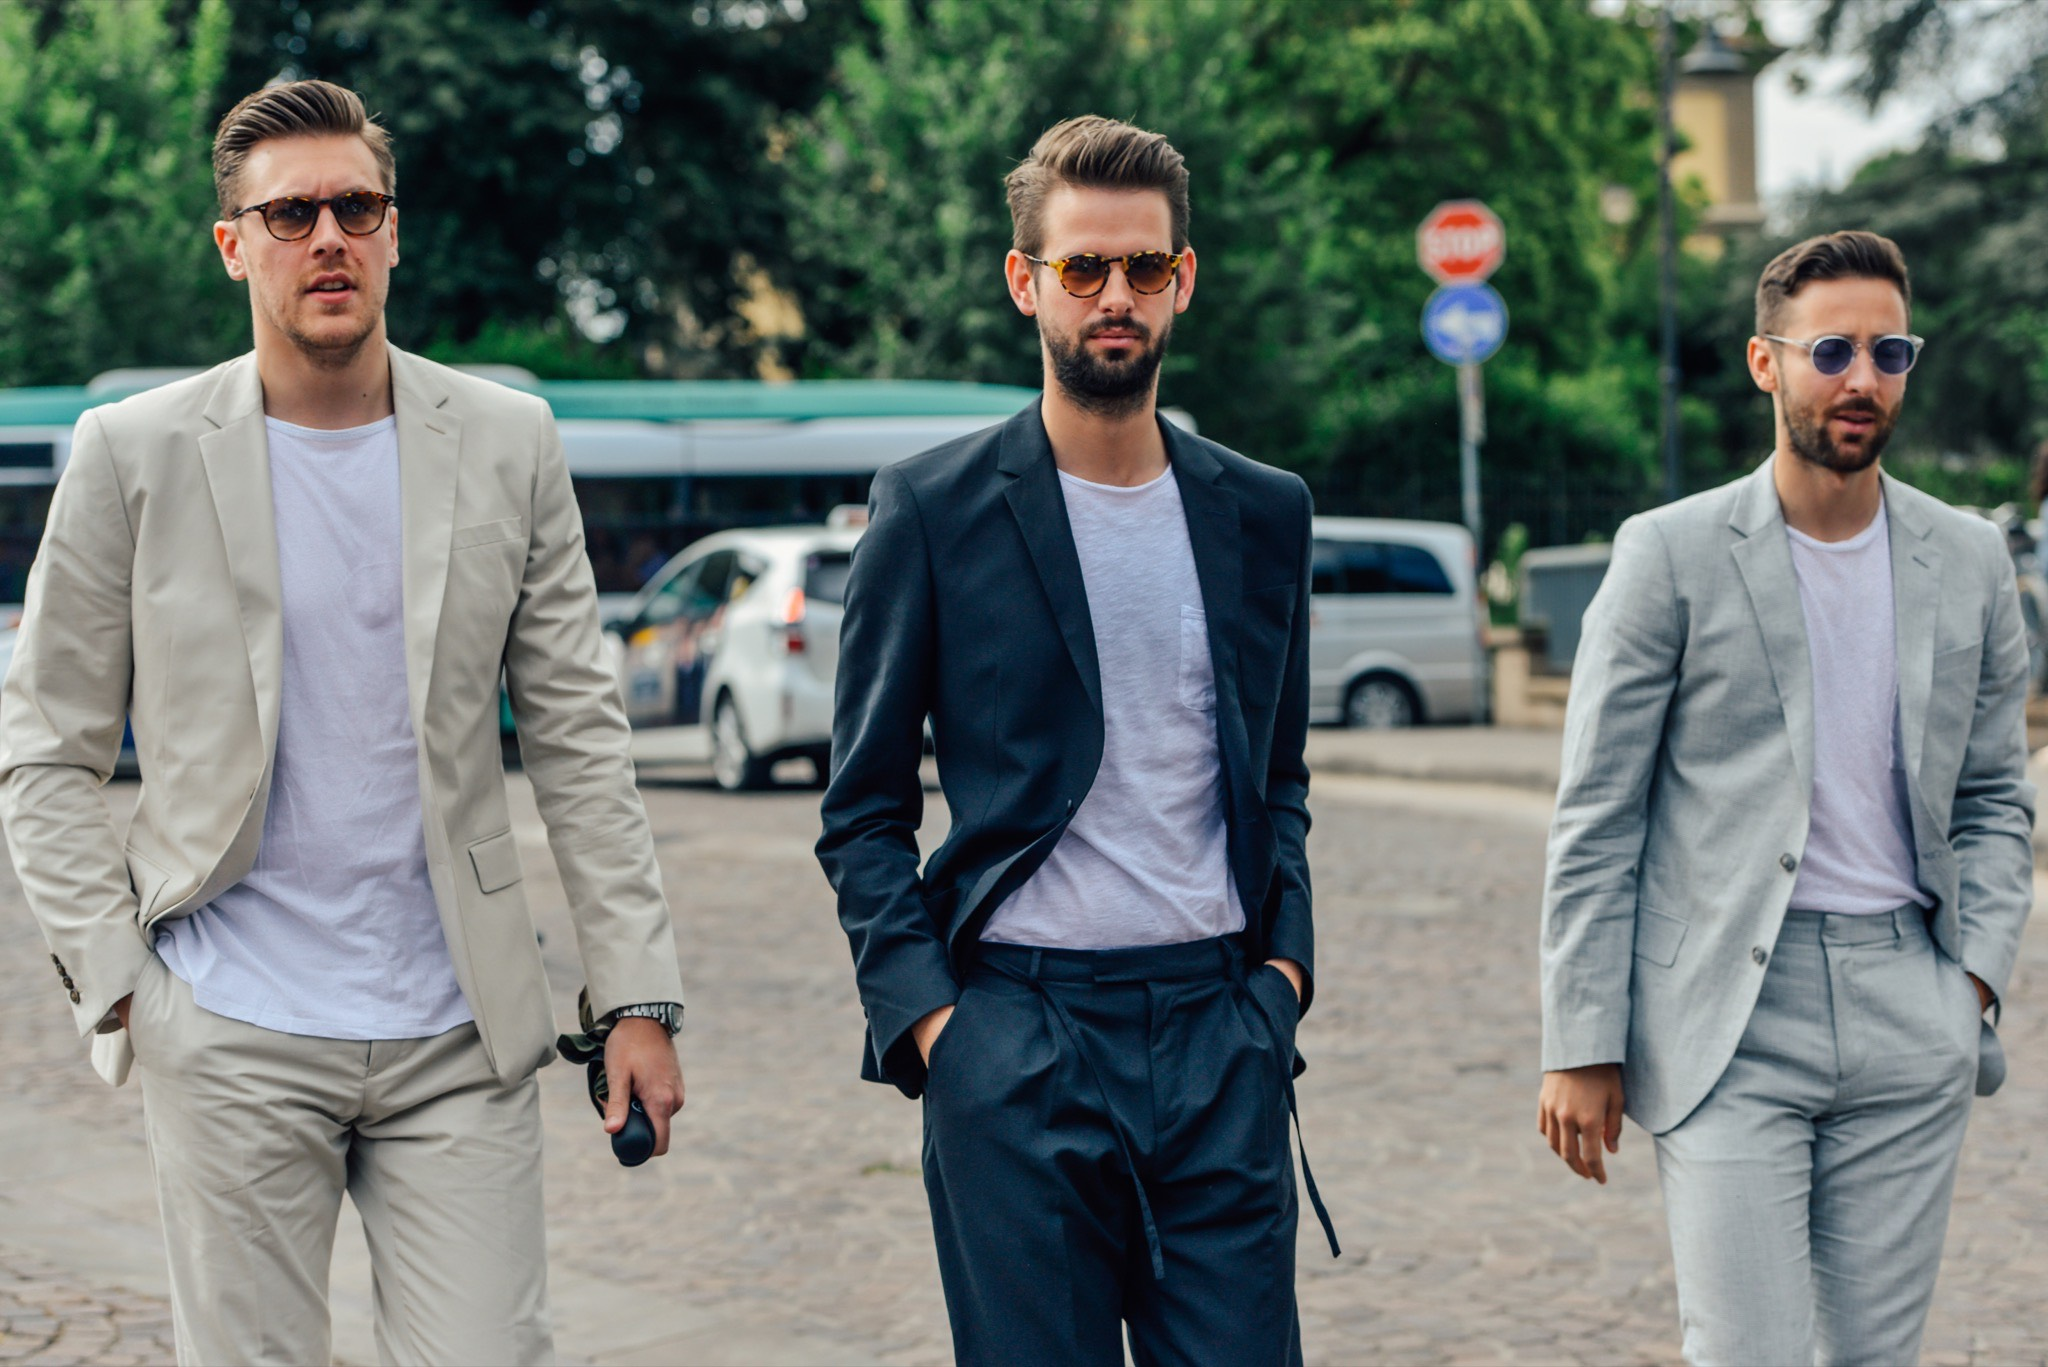 summer-suiting-3-tees-tt-26-spring-2016-menswear-street-style-16